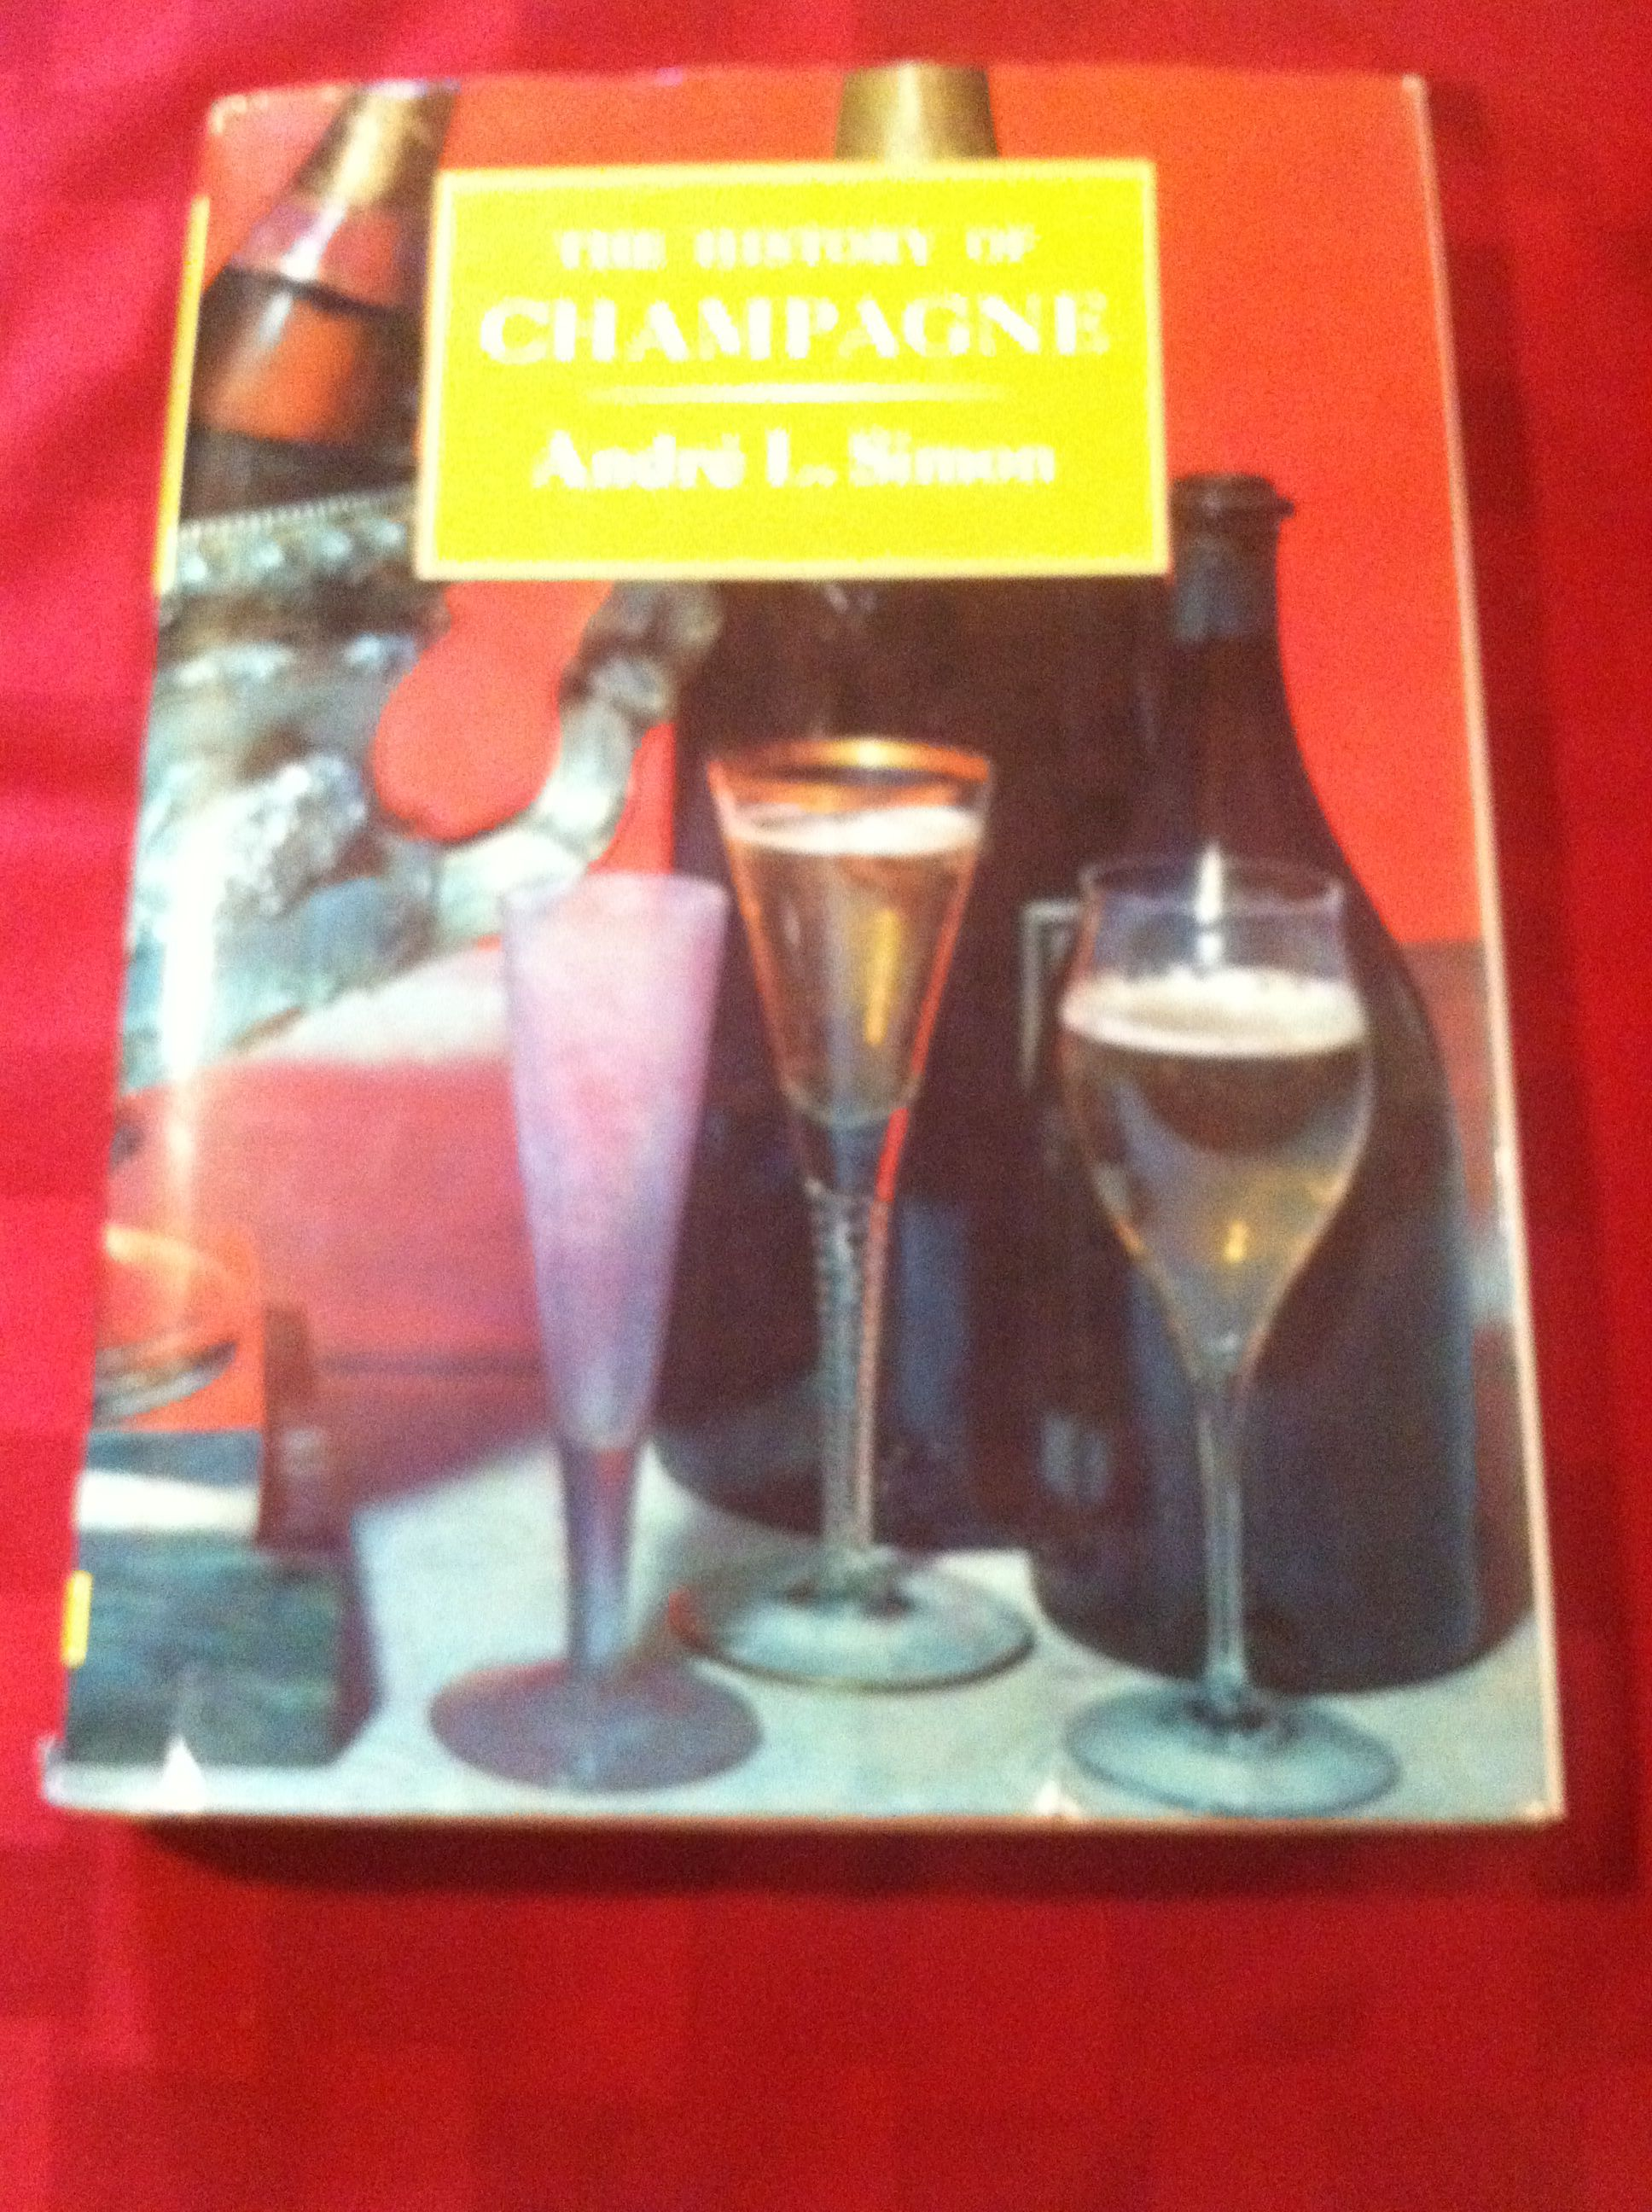 History Of Champagne Andre Simon C 1961 Vintage Cocktails Champagne Champagne Flute